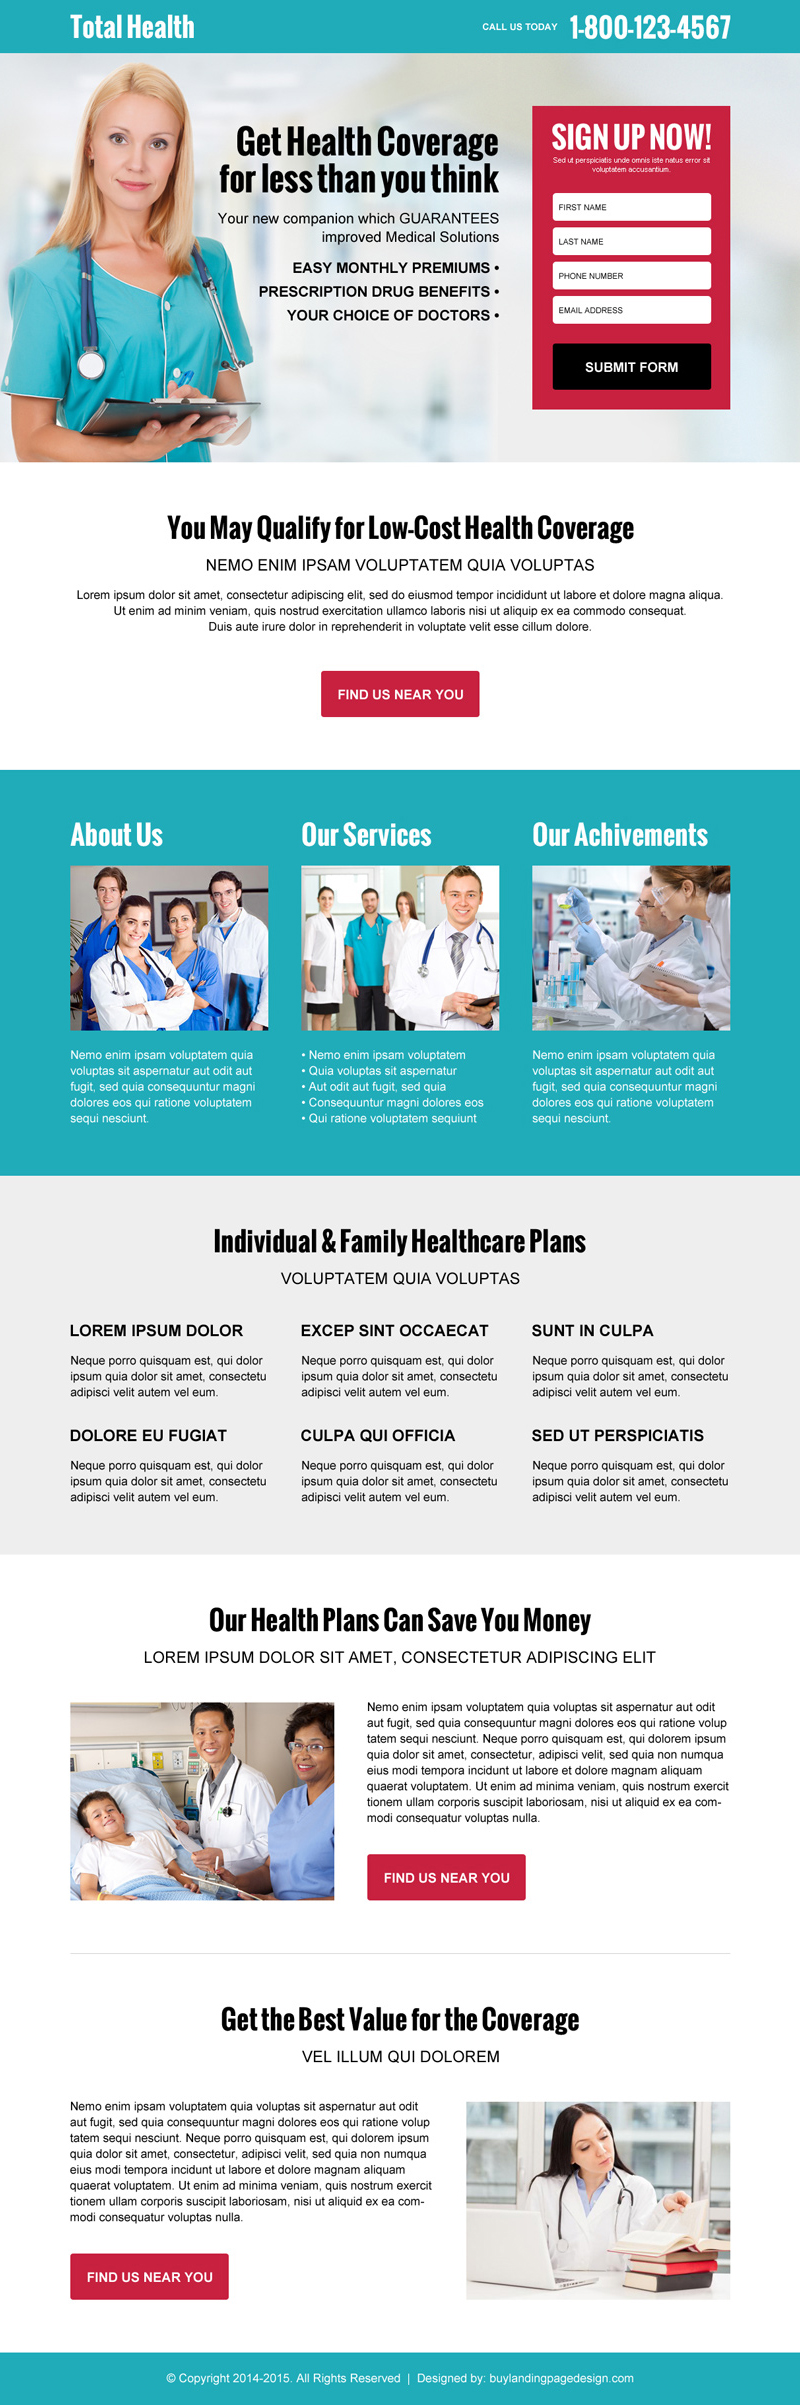 free-medical-health-coverage-quote-service-high-converting-landing-page-design-template-018